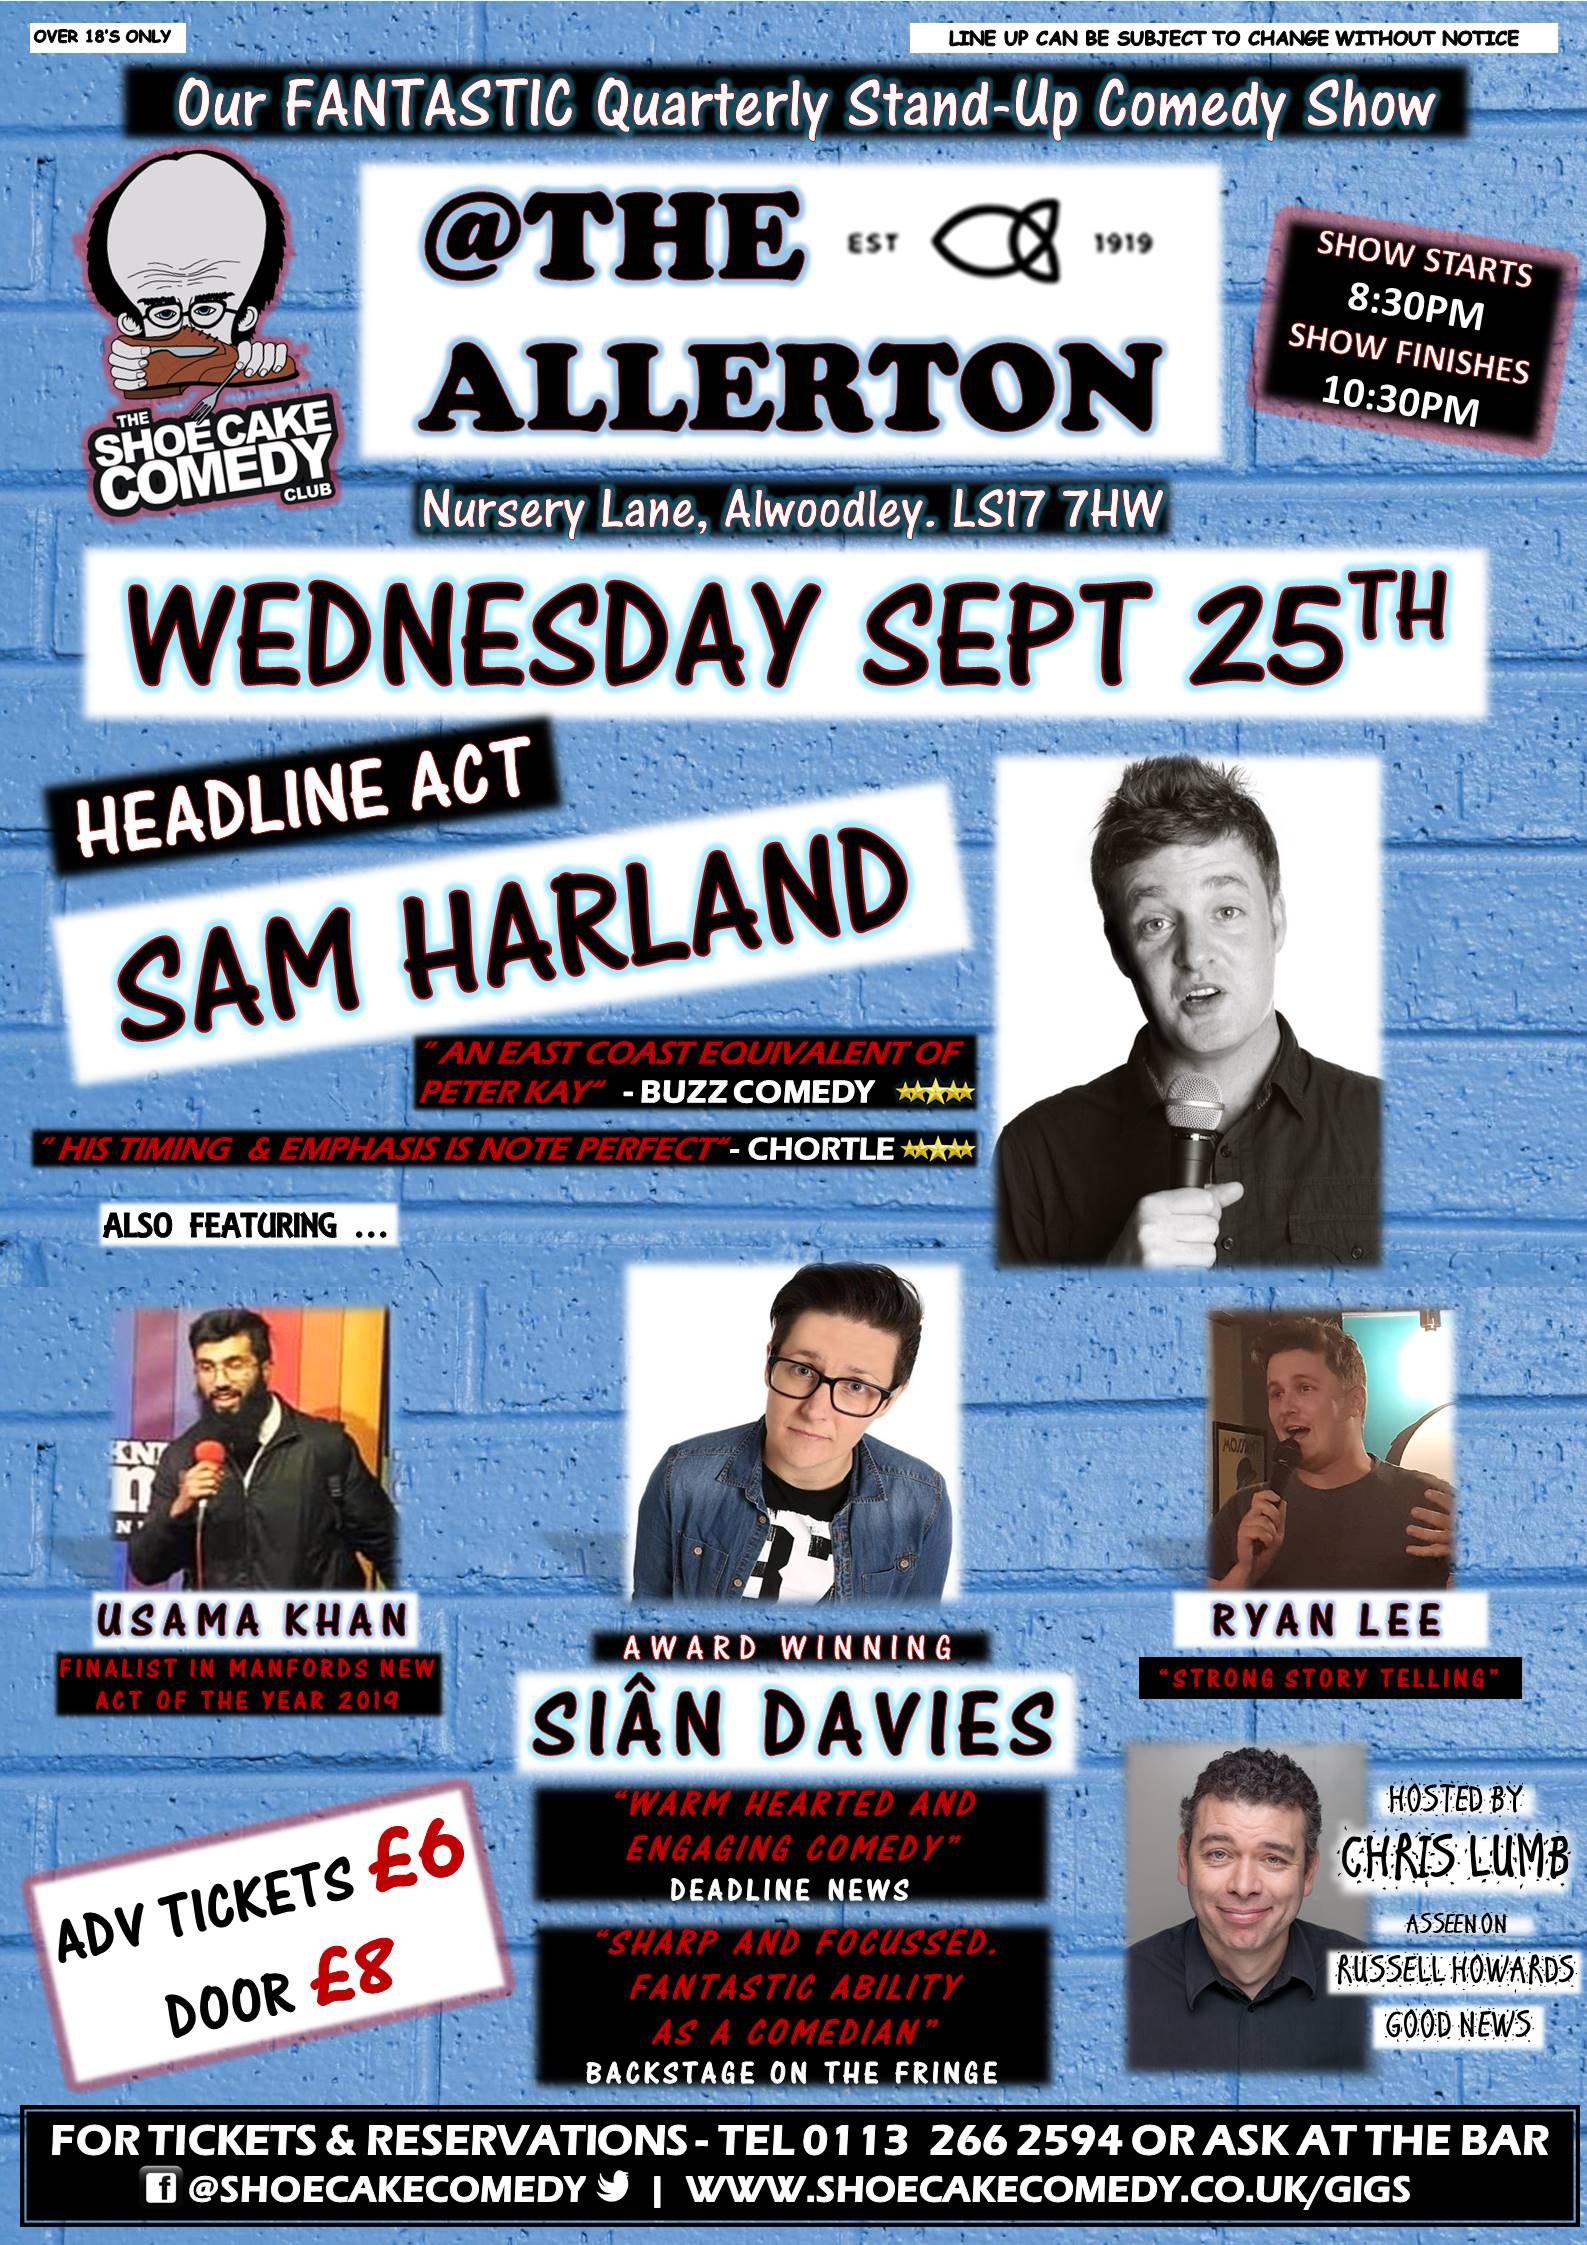 Sept 25th allerton poster